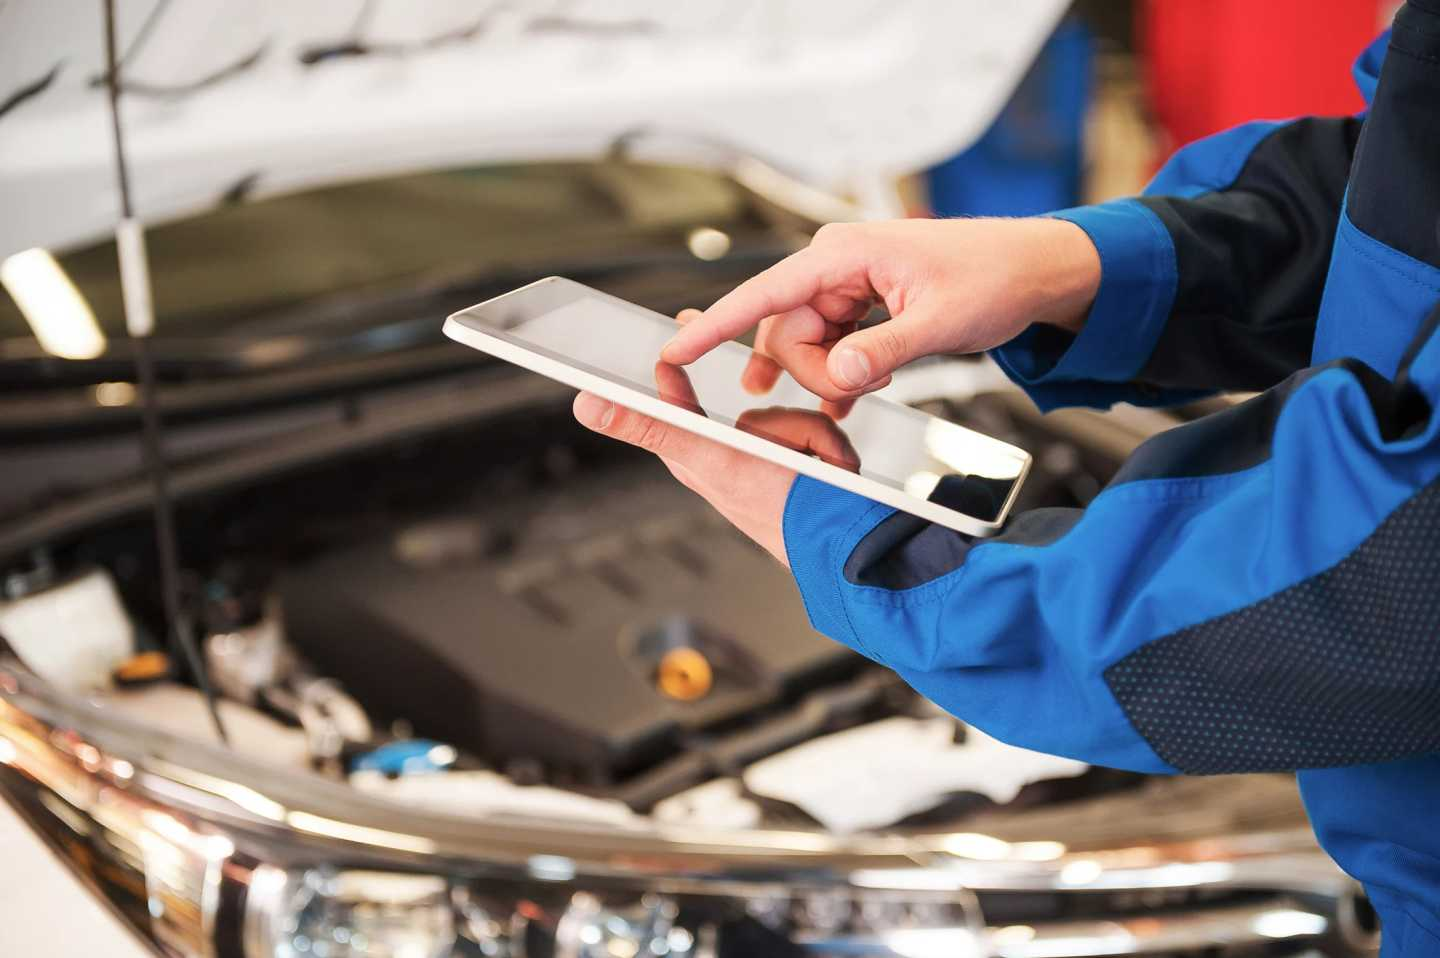 Become a Mobile App Developer - Alpha Helps A Mechanic Learn